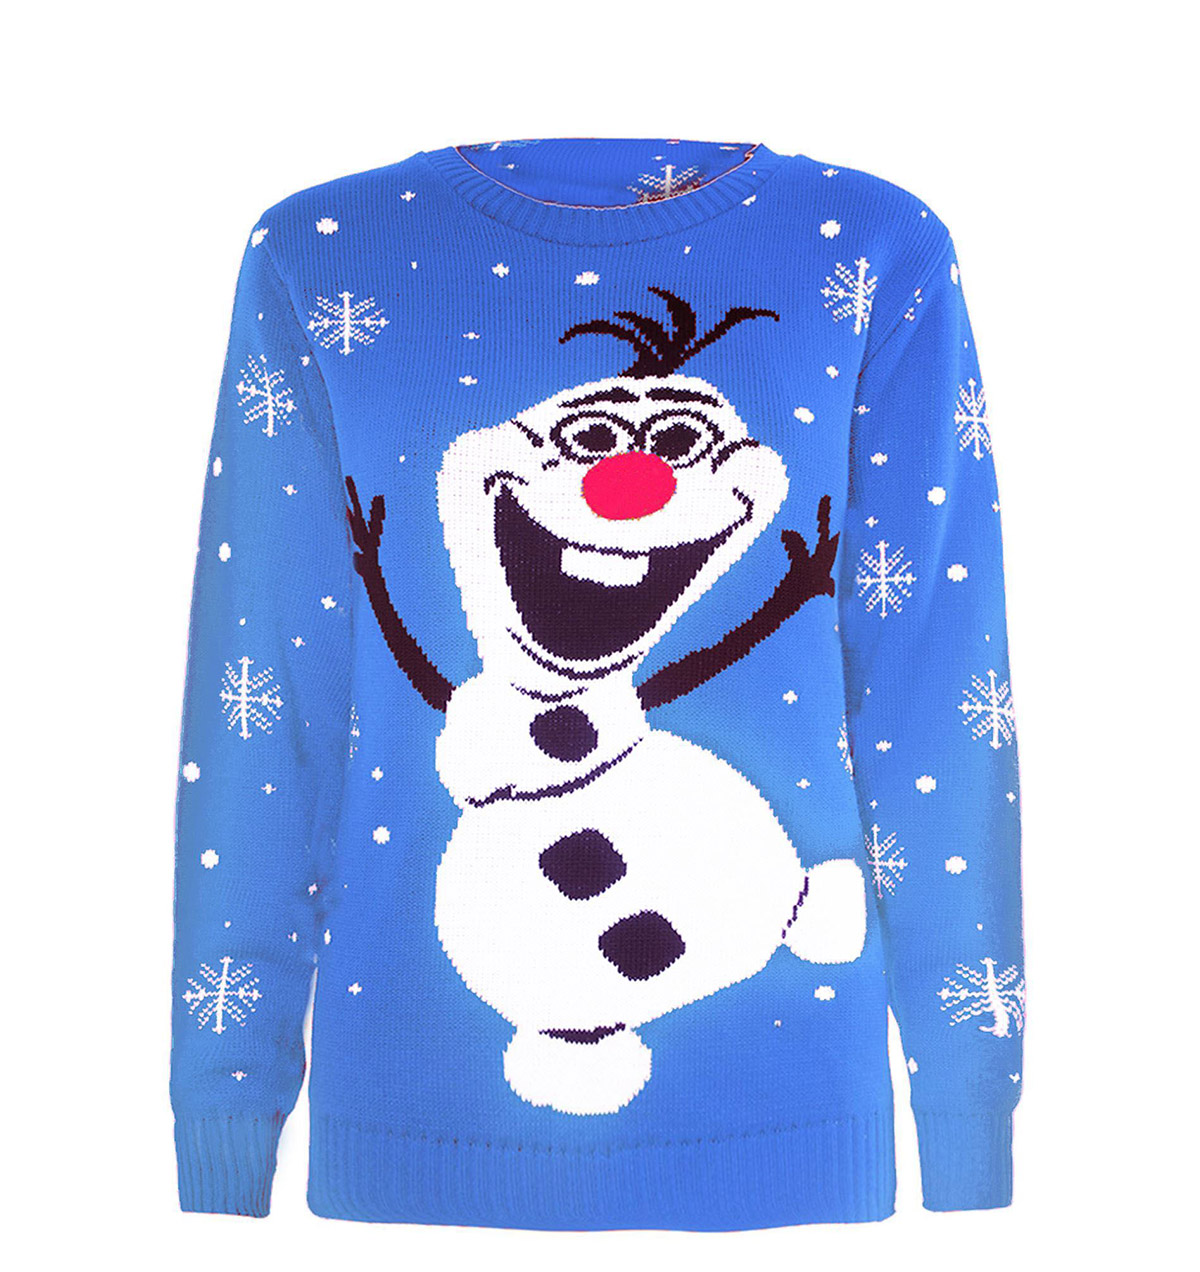 Olaf christmas sweater knitted in blue ugly christmas sweaters store